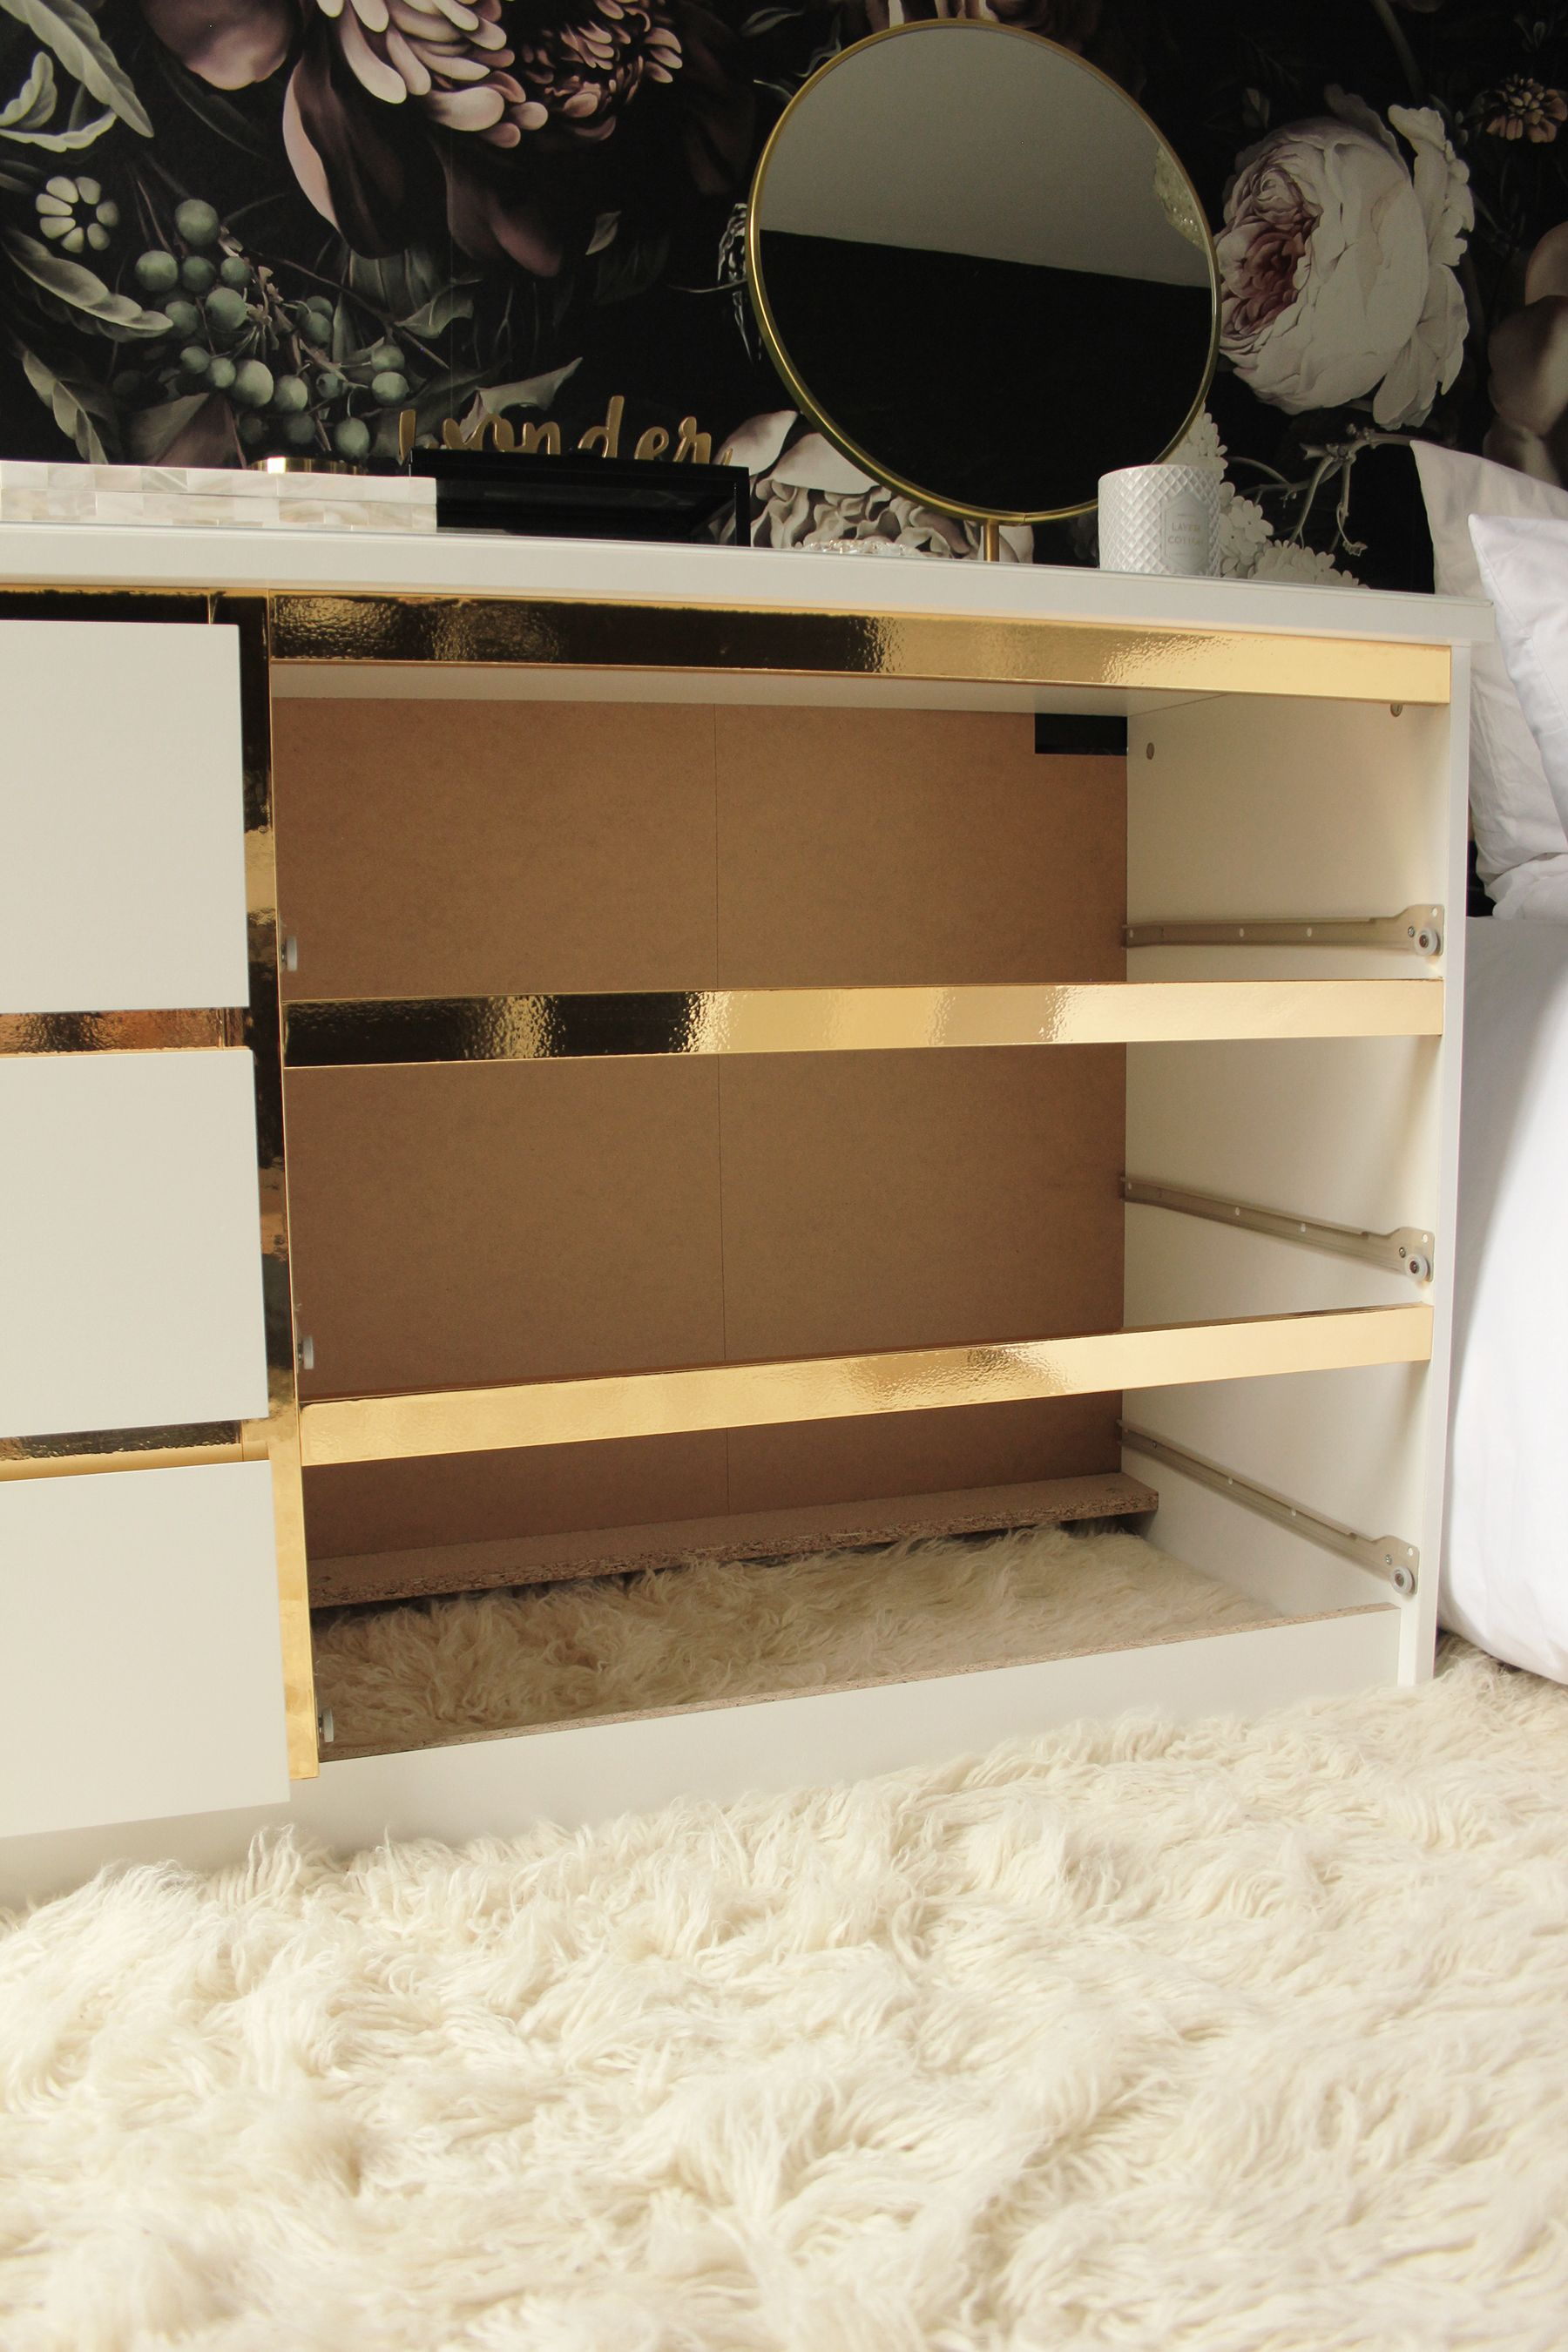 Ikea Kommode Pimpen Preciously Me Blog Diy Ikea Hack Customize And